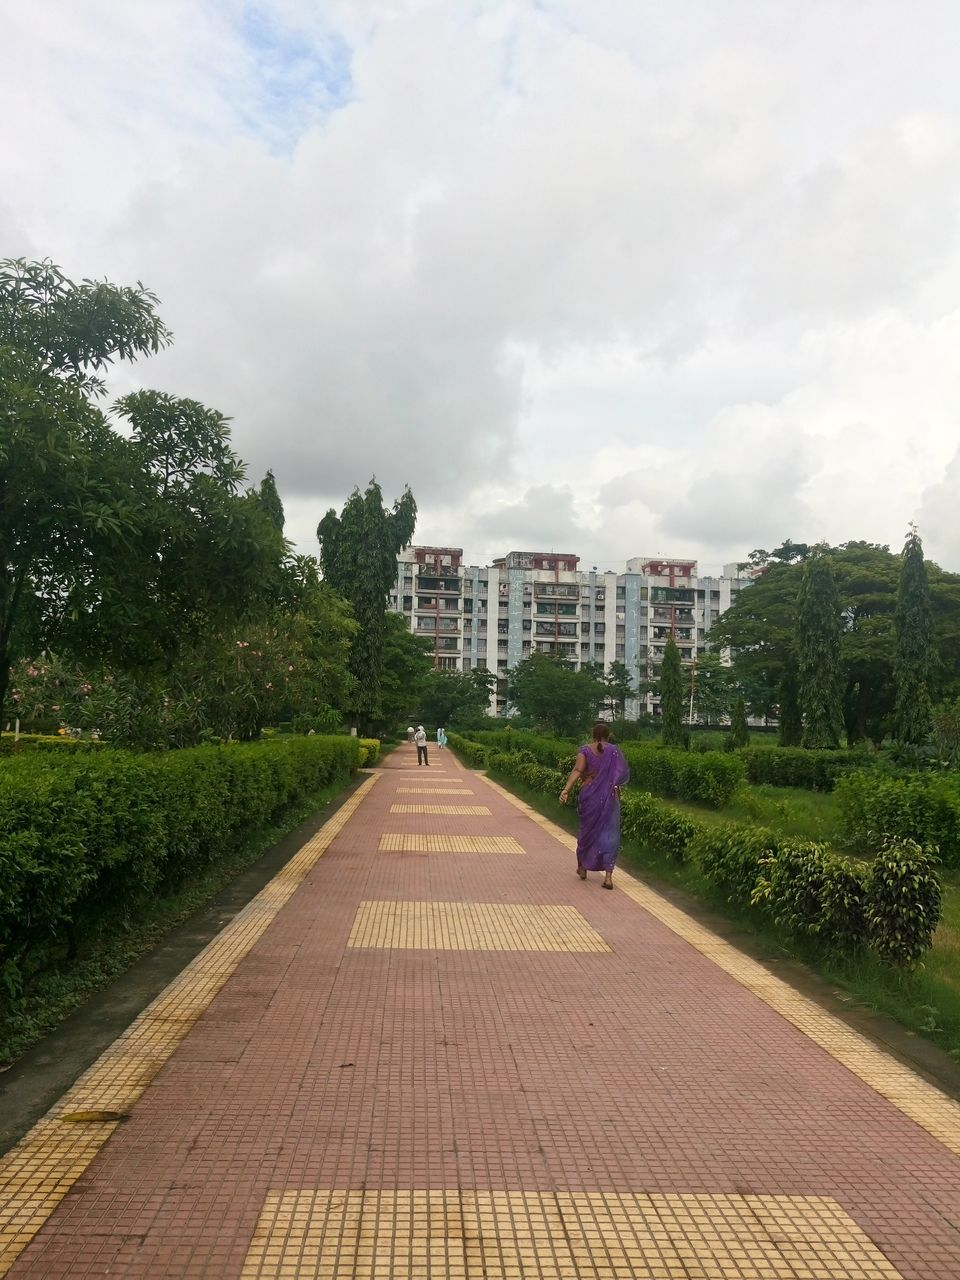 rear view, sky, built structure, cloud - sky, walking, architecture, real people, full length, building exterior, tree, the way forward, day, outdoors, women, growth, two people, nature, men, people